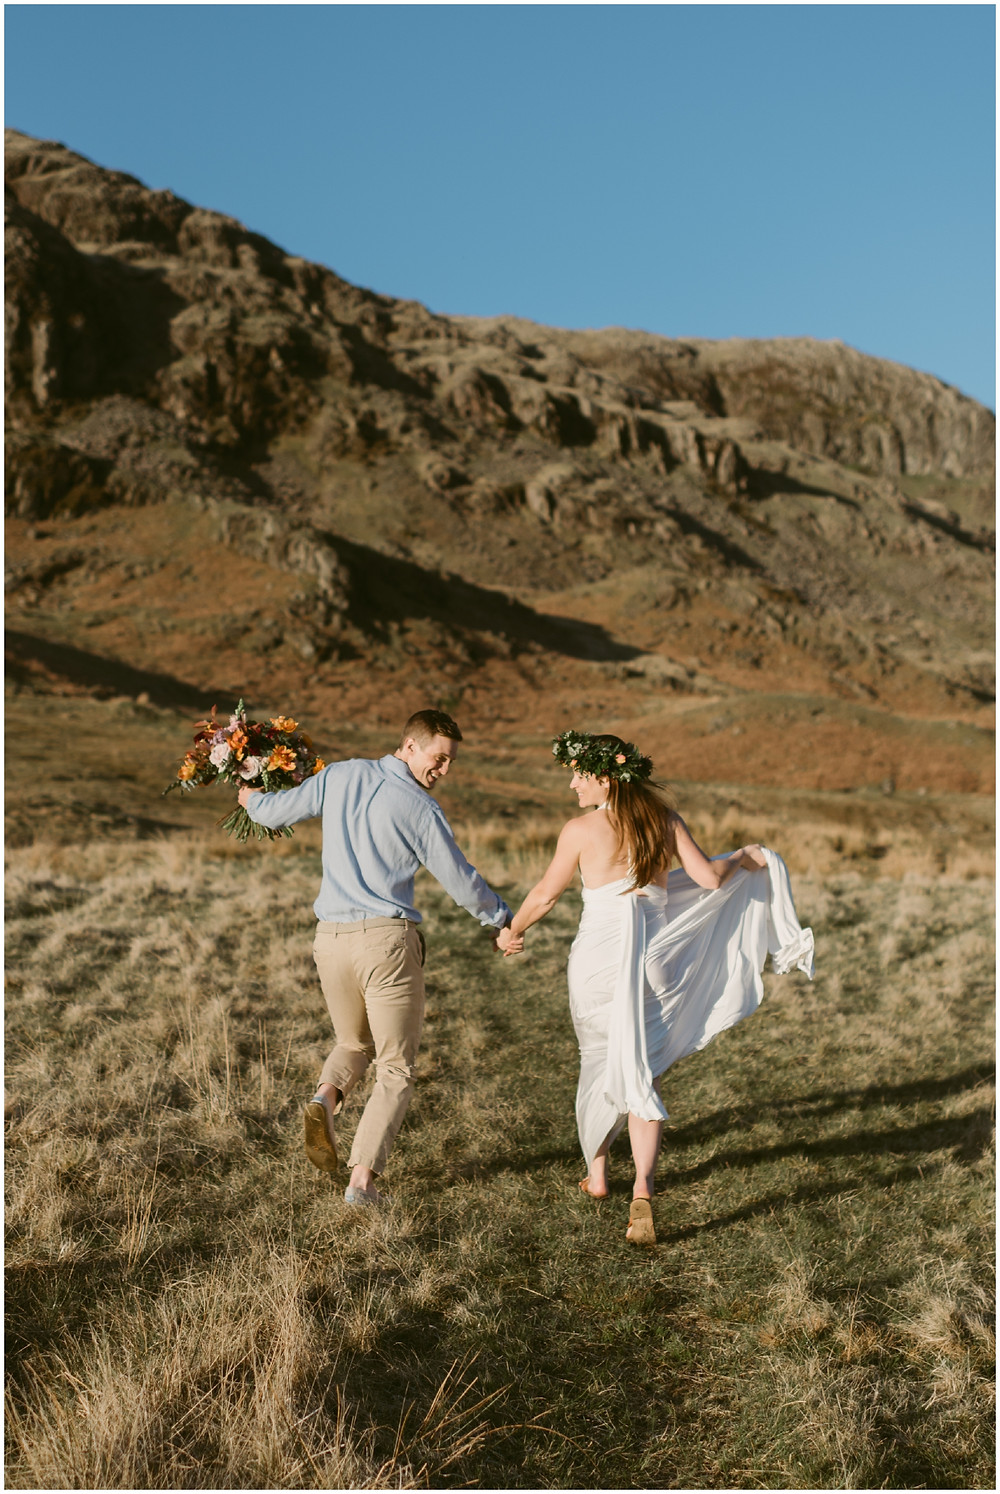 Outdoor elopement portraits in the UK